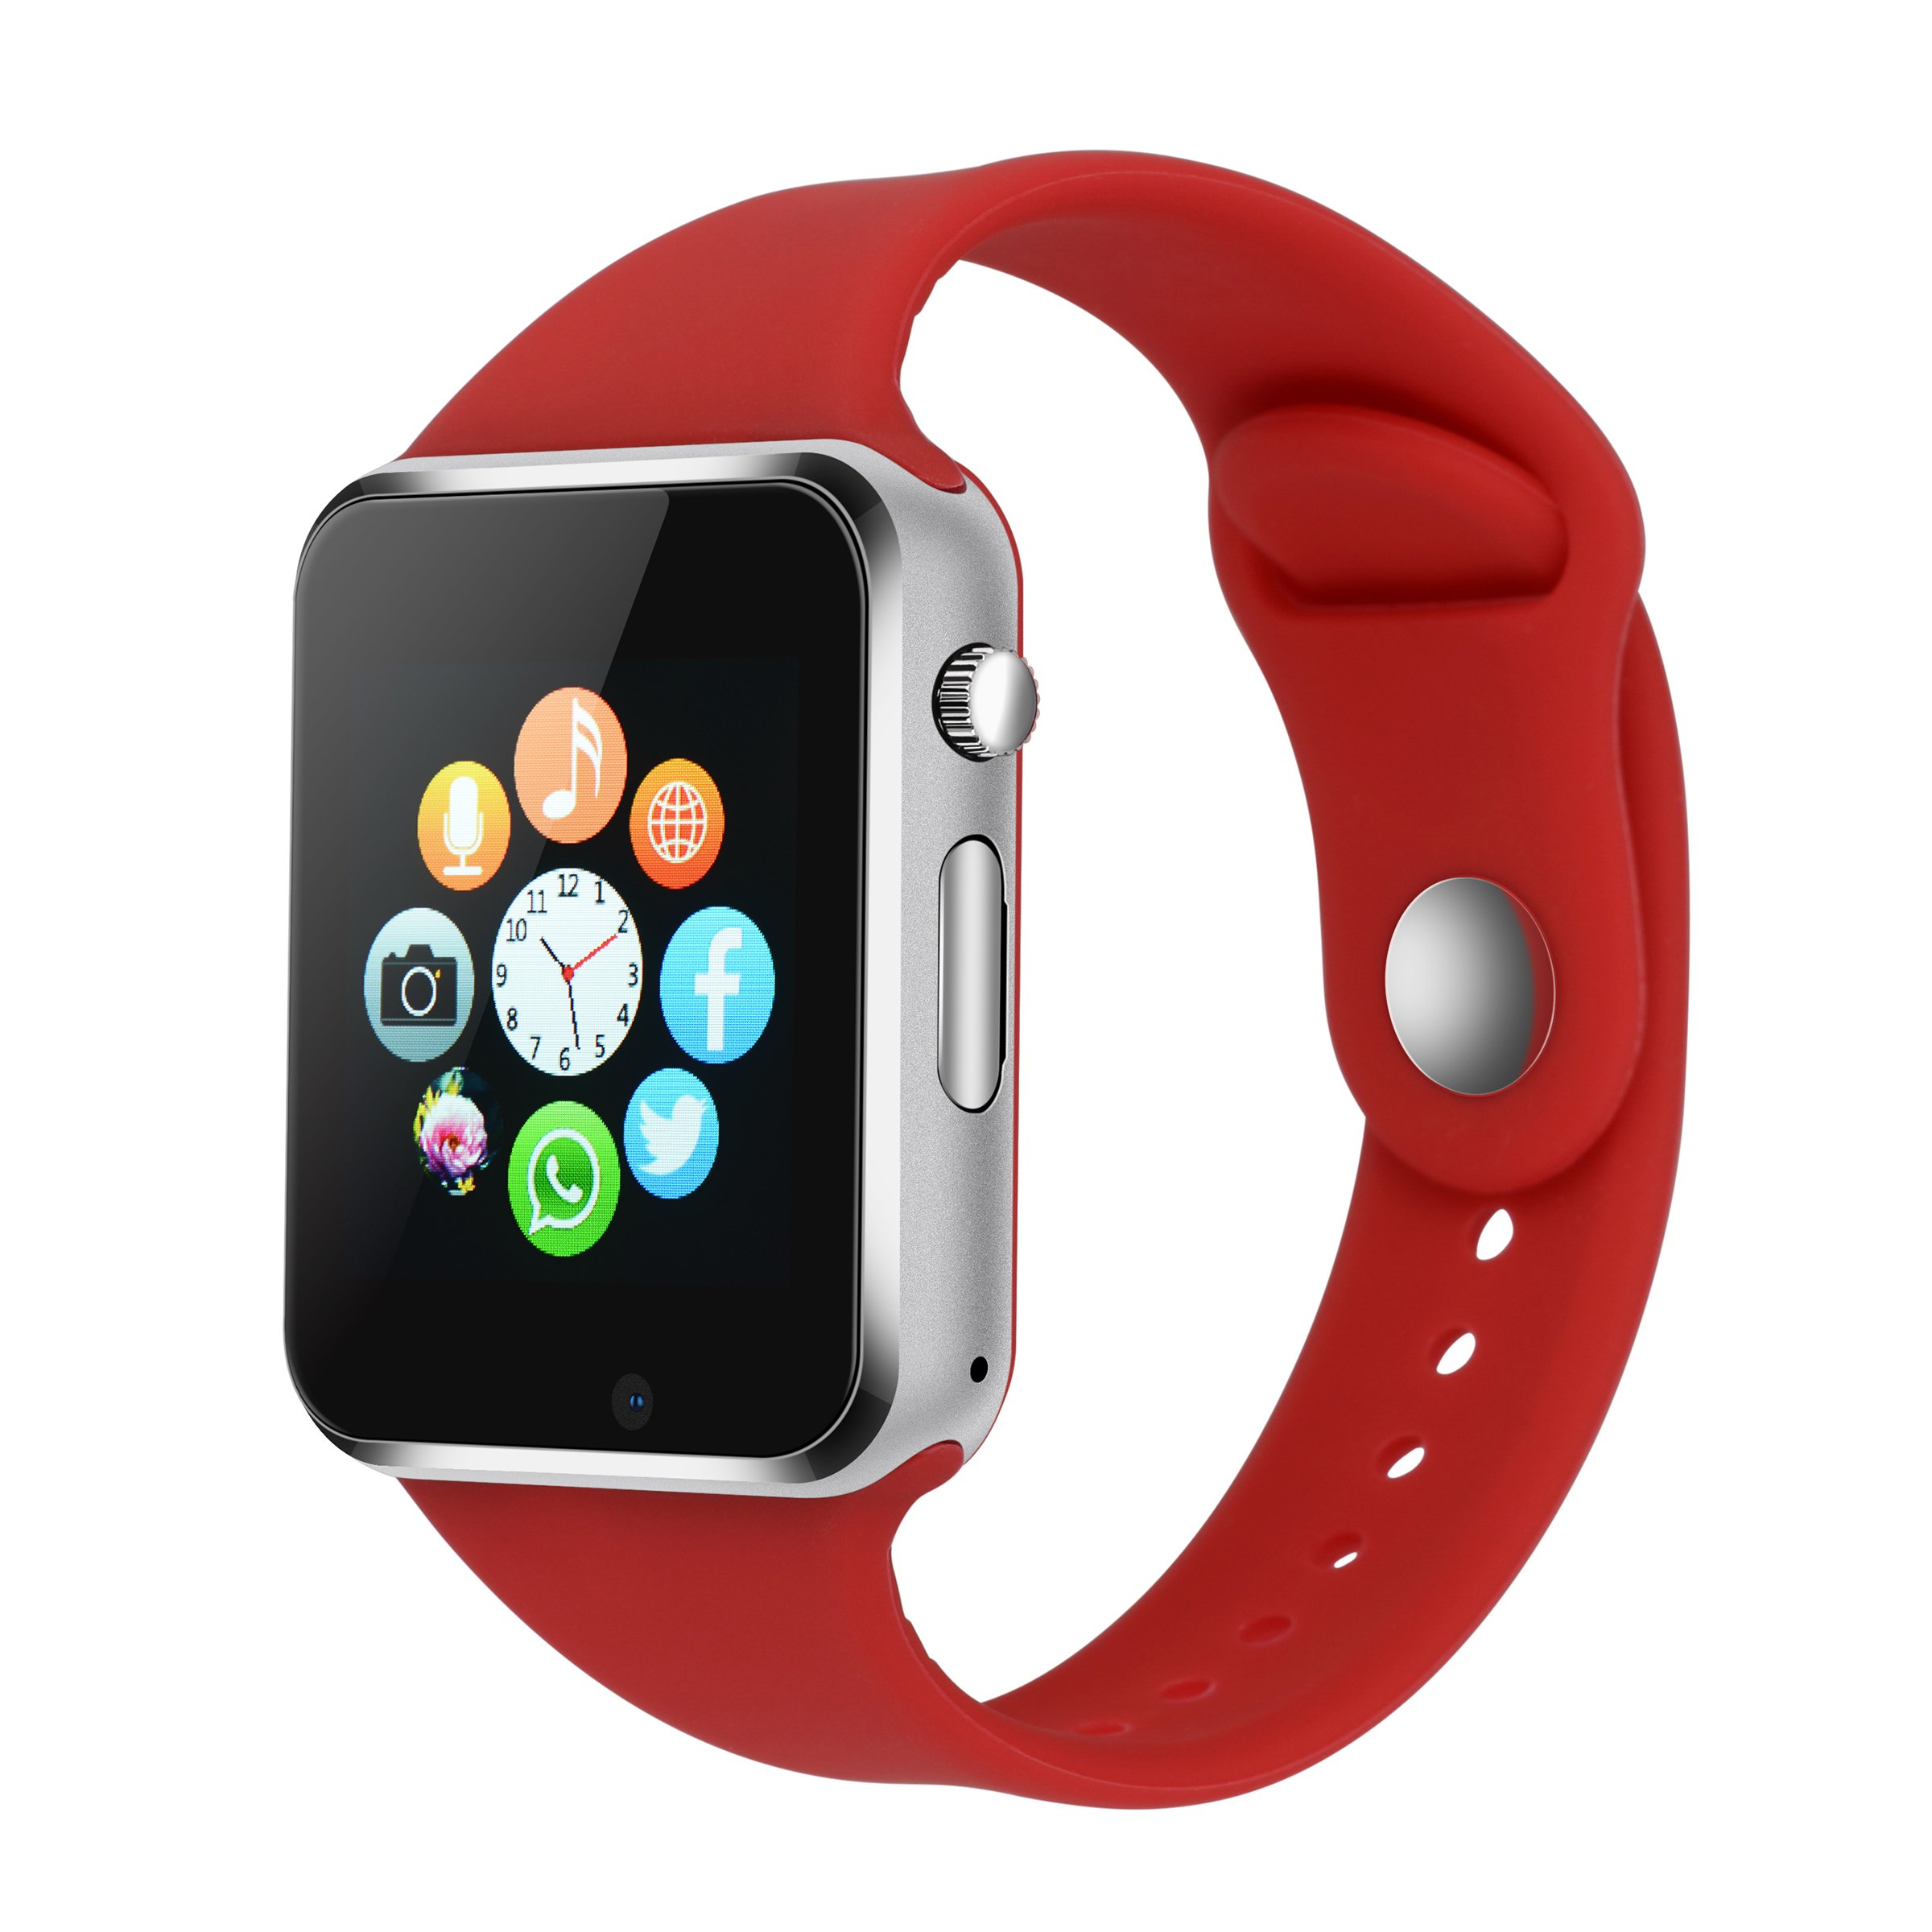 SUNETLINK Smart Watch for Android iPhone, Touch Screen Bluetooth Cell Phone Watch with Camera,SIM Card Slot/Pedometer Analy/Sleep Monitoring for Android and IOS Men Women Kids Girls